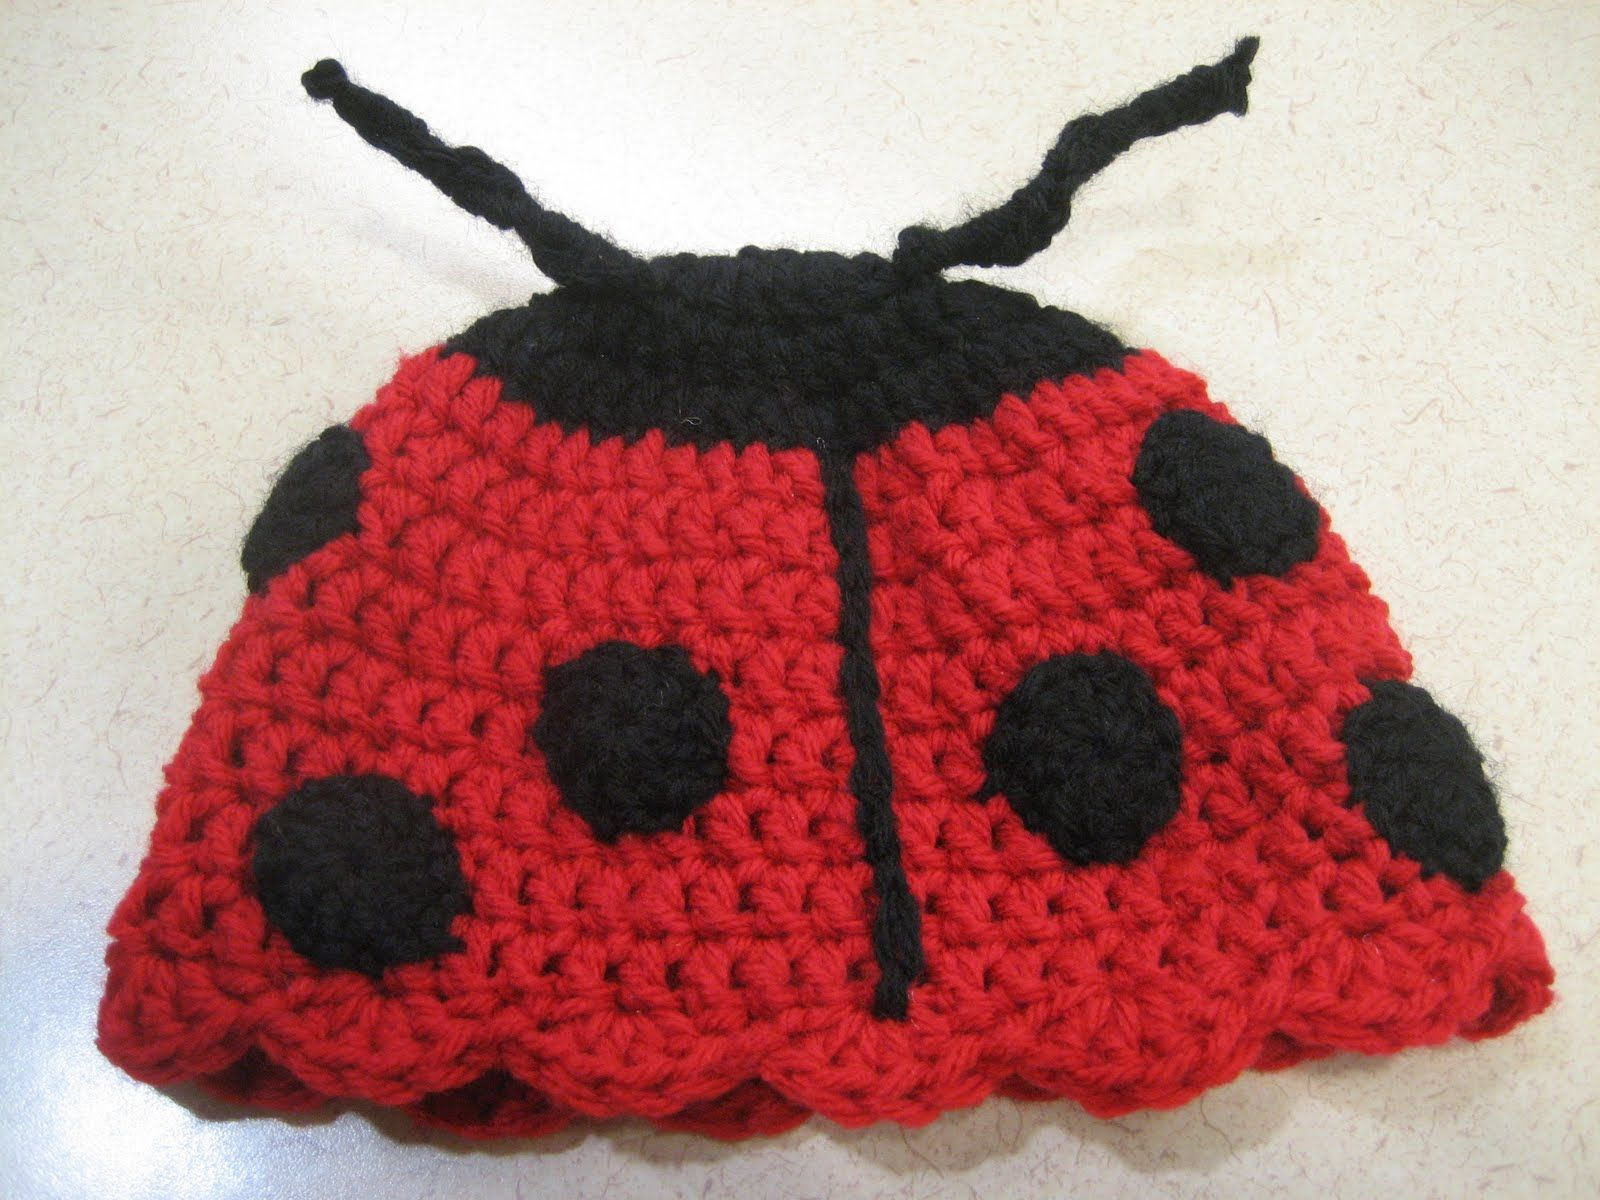 Crochet Ladybug Toy Pattern | Crochet Every Day | Places to Visit ...